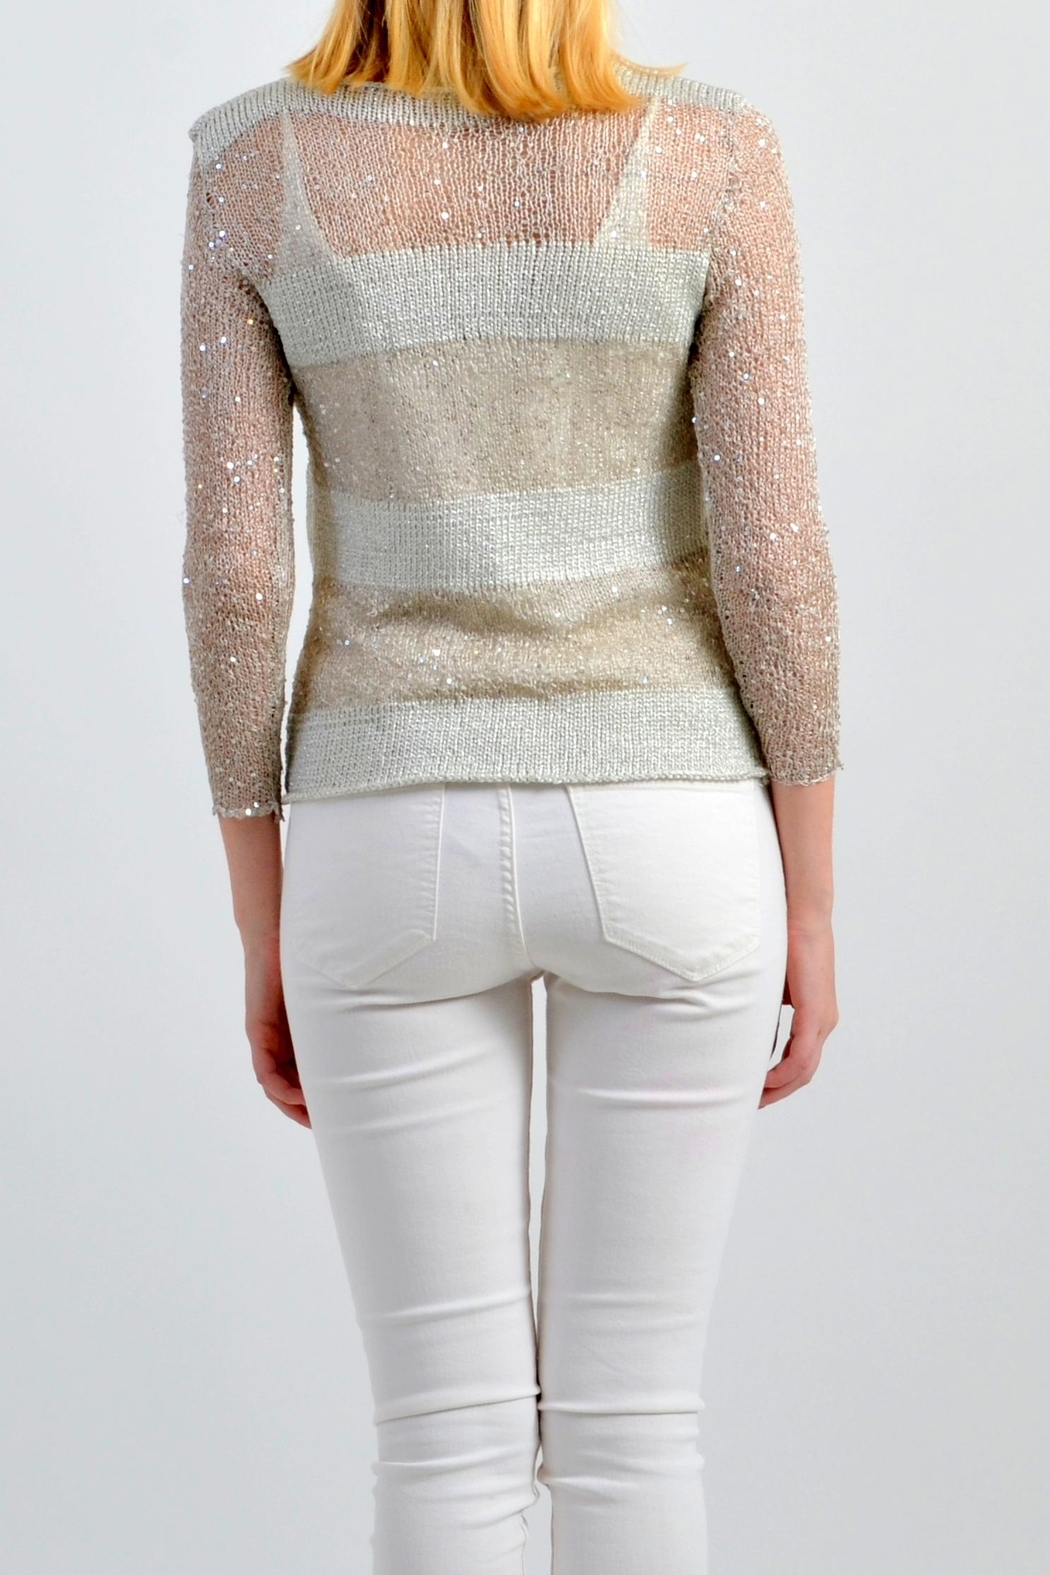 De Mil Amores Buenos Aires Capri Sweater - Side Cropped Image